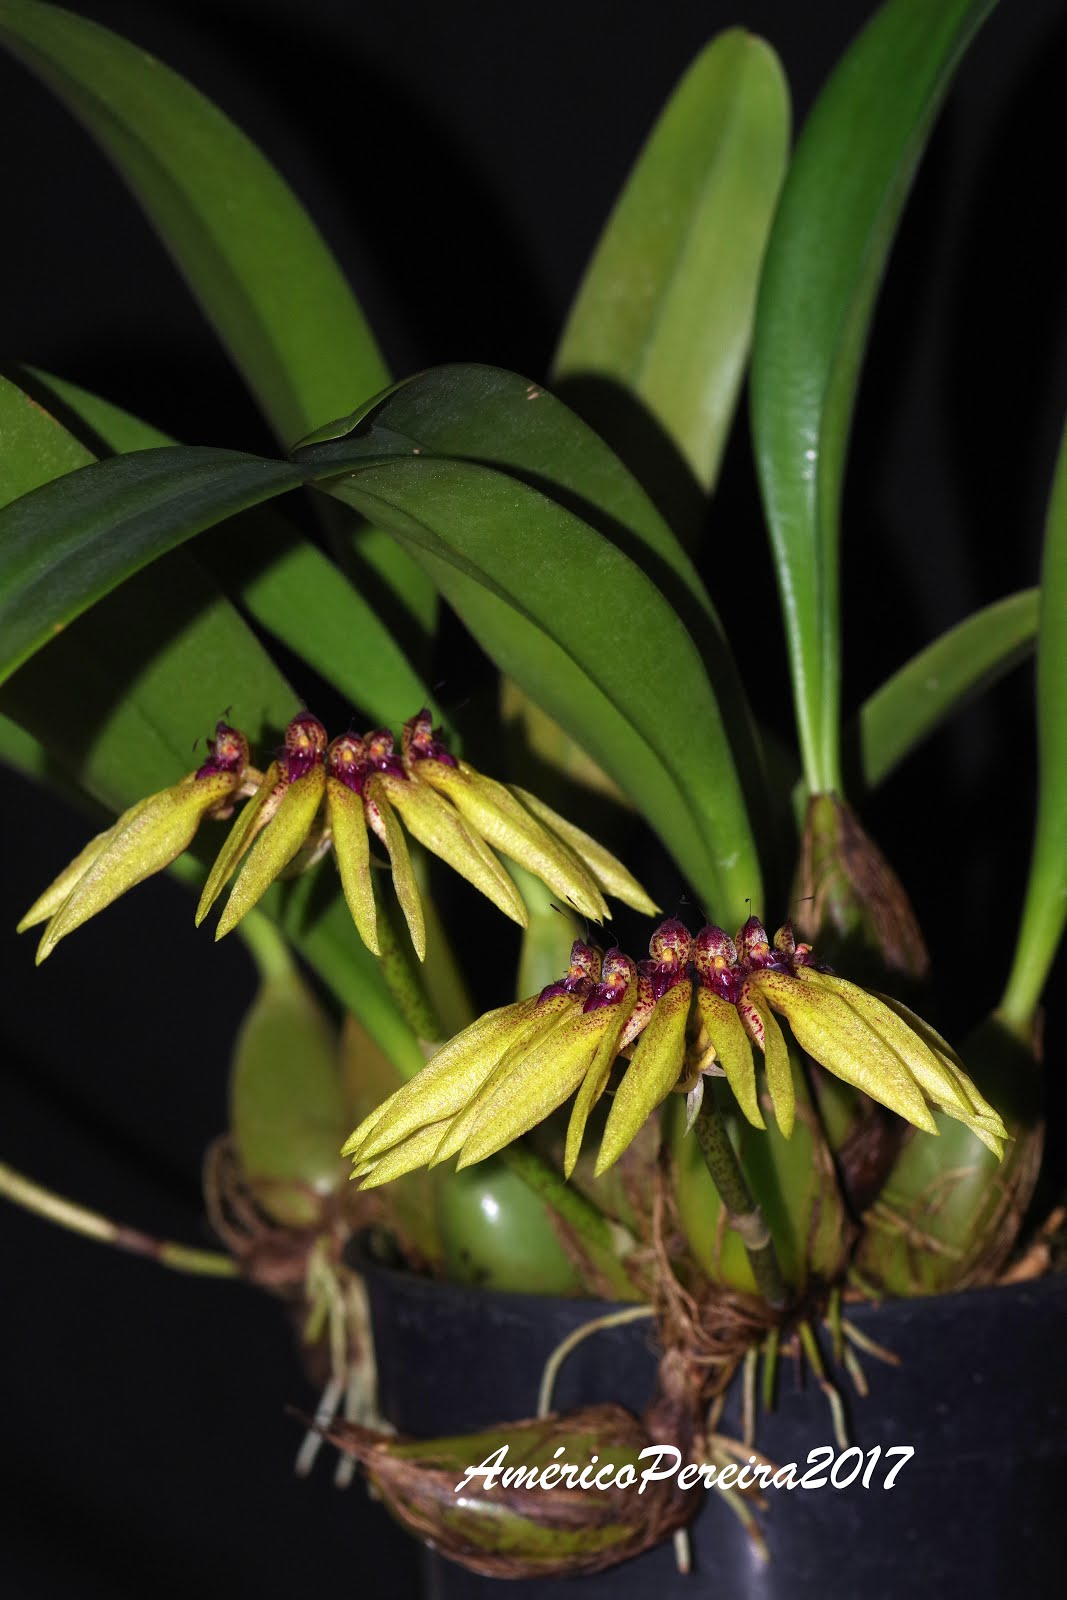 Bulbophyllum picturatum